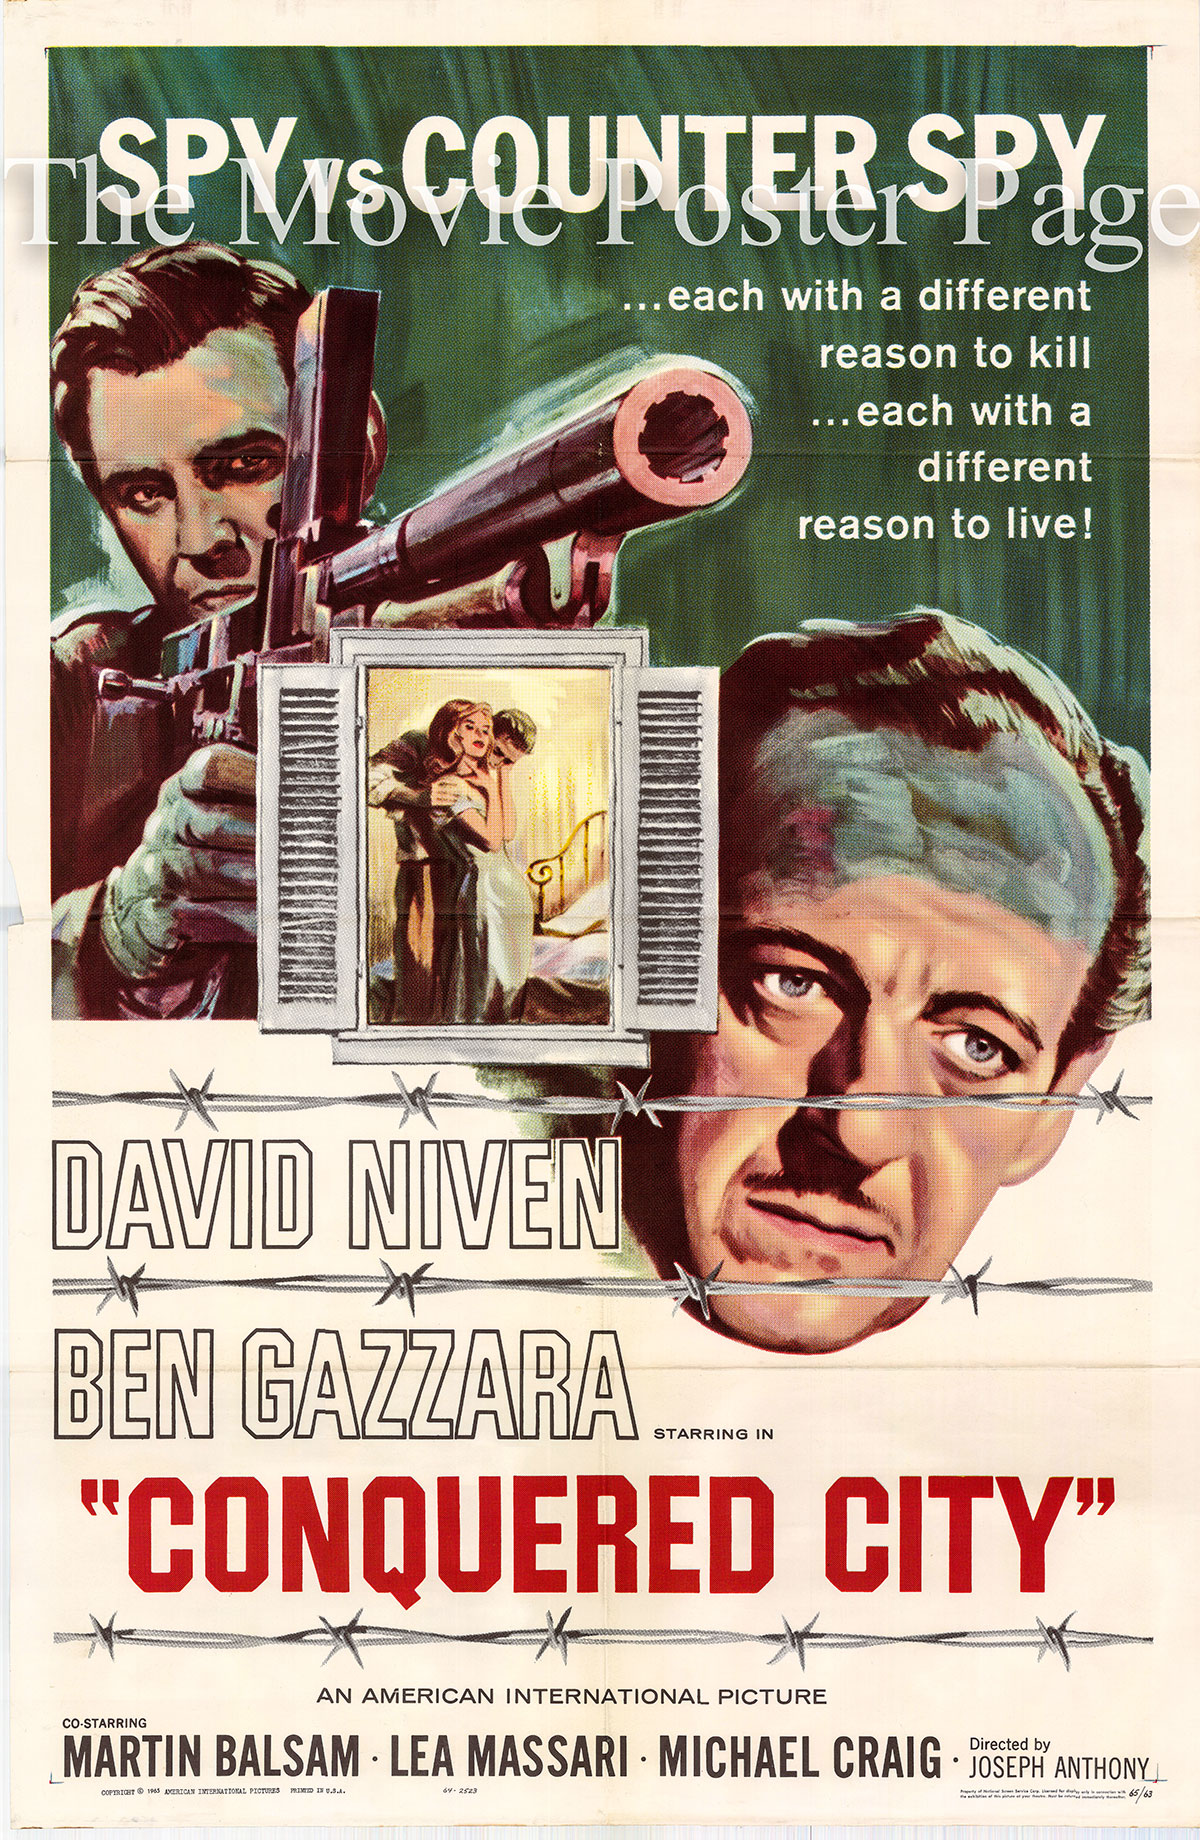 Pictured is a US one-sheet promotional poster for the 1965 Joseph Anthony film Conquered City starring David Niven.